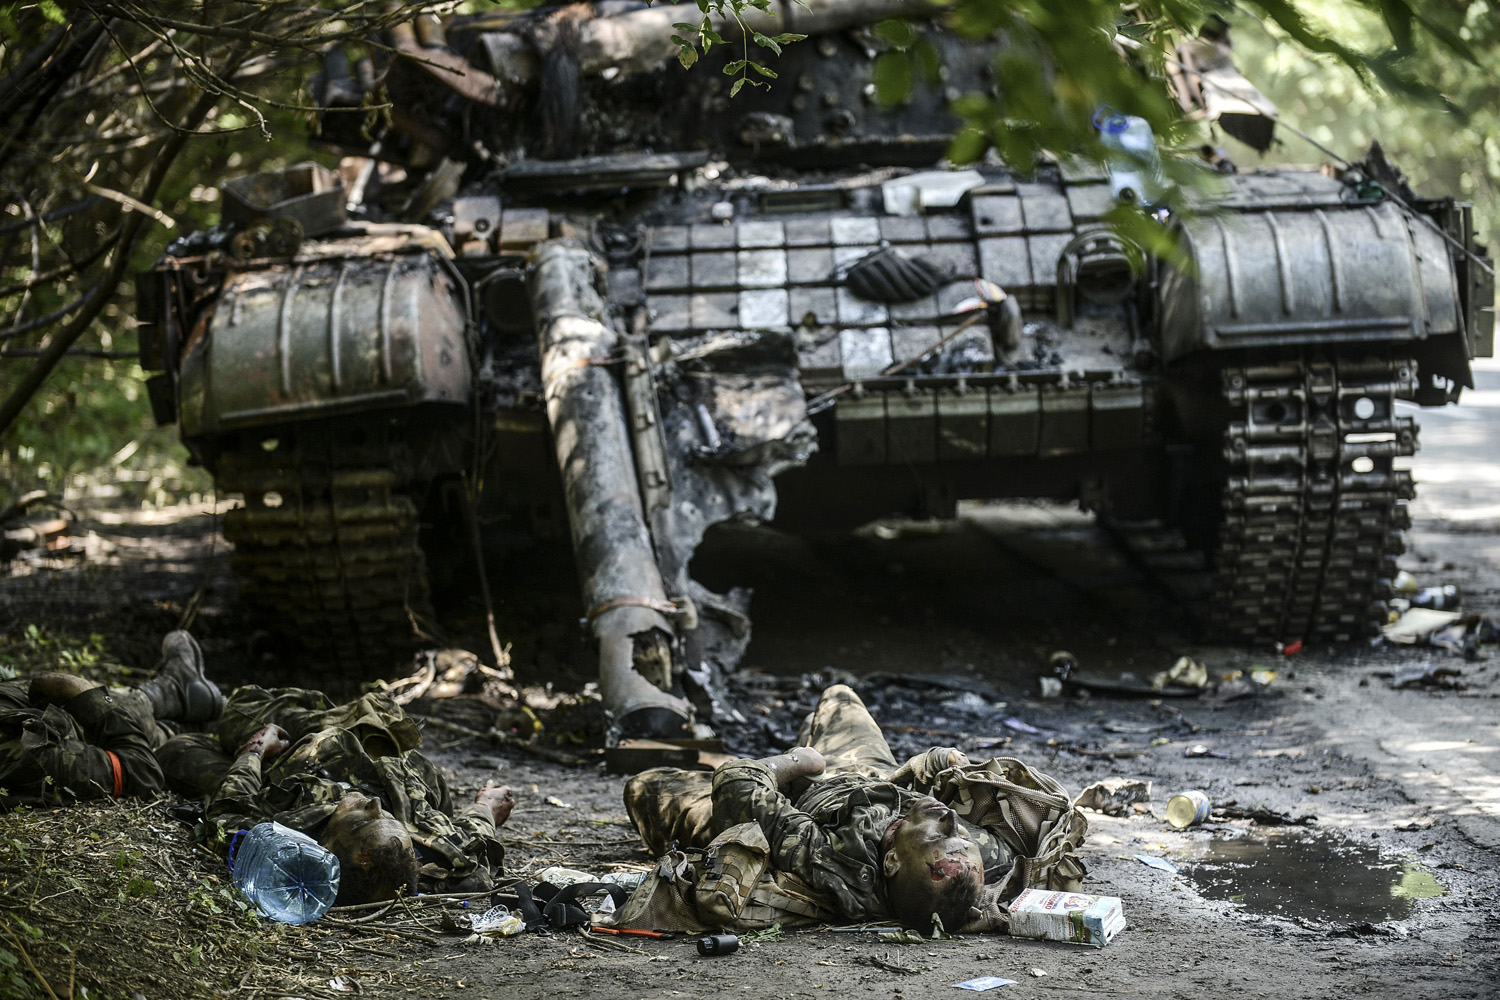 Jul. 22, 2014. Bodies of crew members lie next to a destroyed Ukrainian tank in the northern outskirts of city of Donetsk.